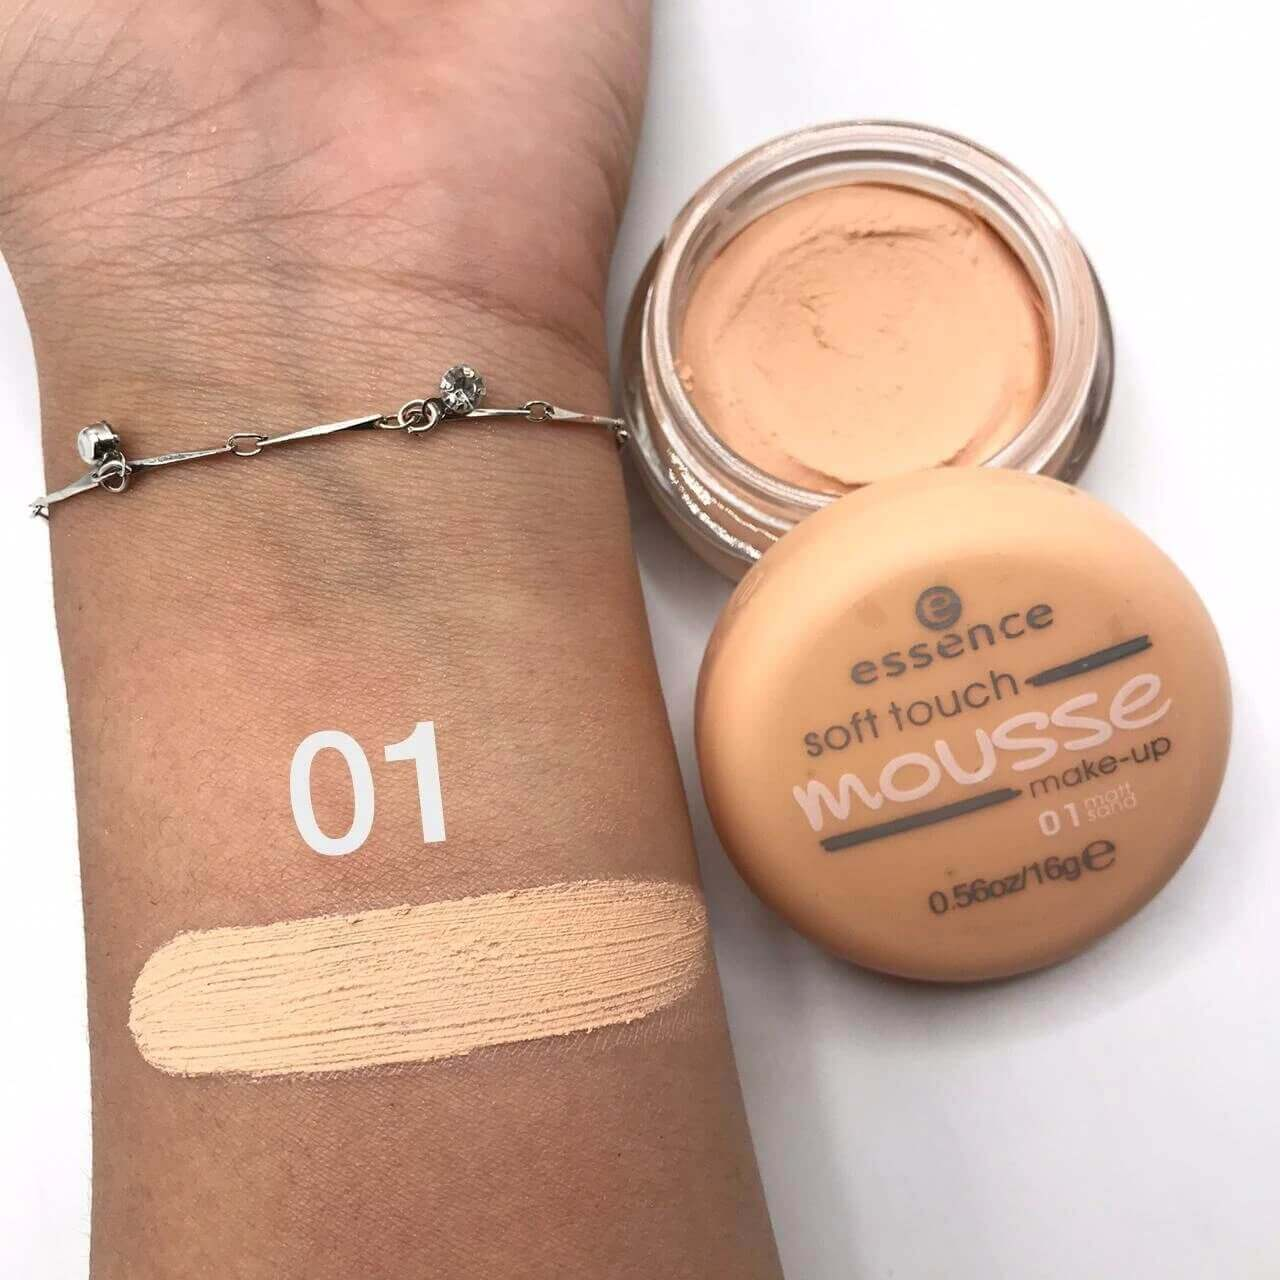 essence soft touch mousse foundation shades in pakistan sanwarna.pk